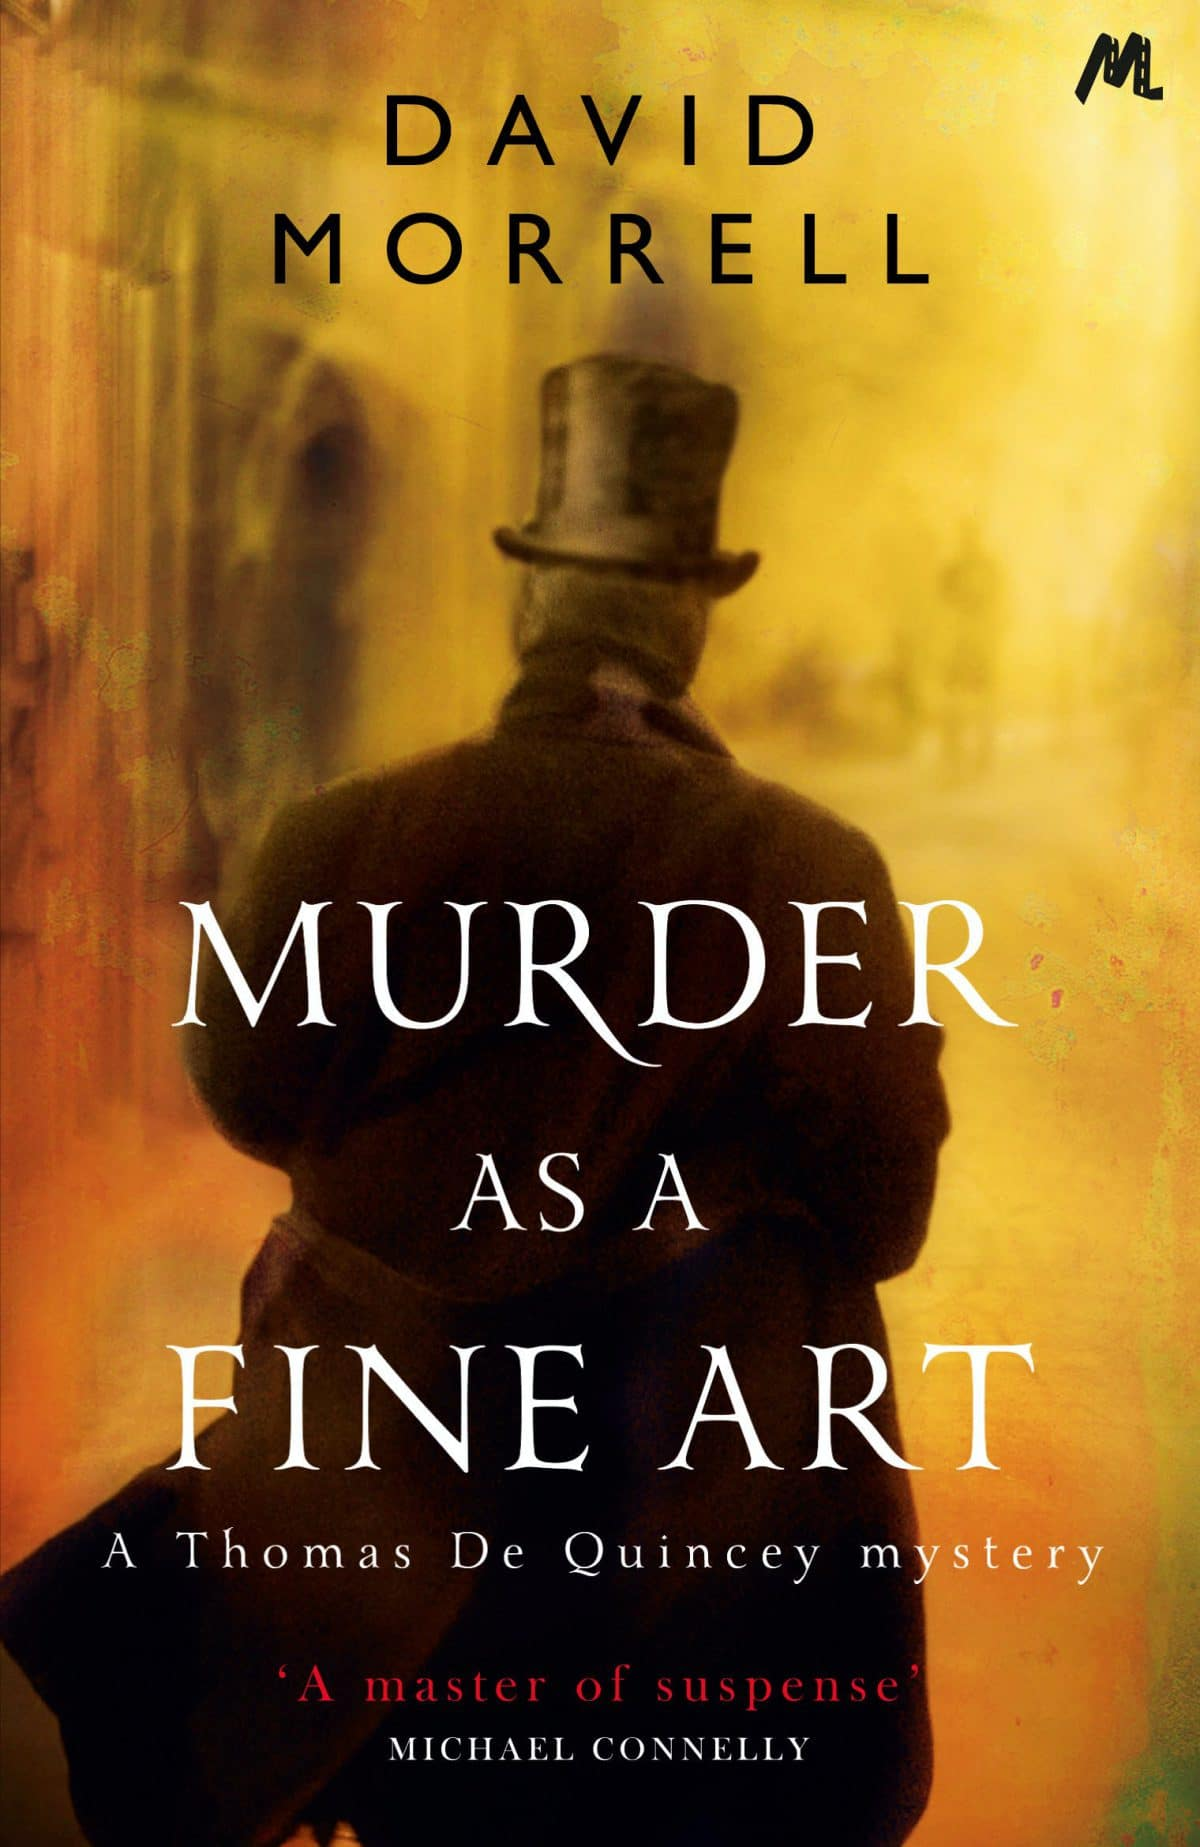 Murder as a Fine Art is a fantastic historical thriller!